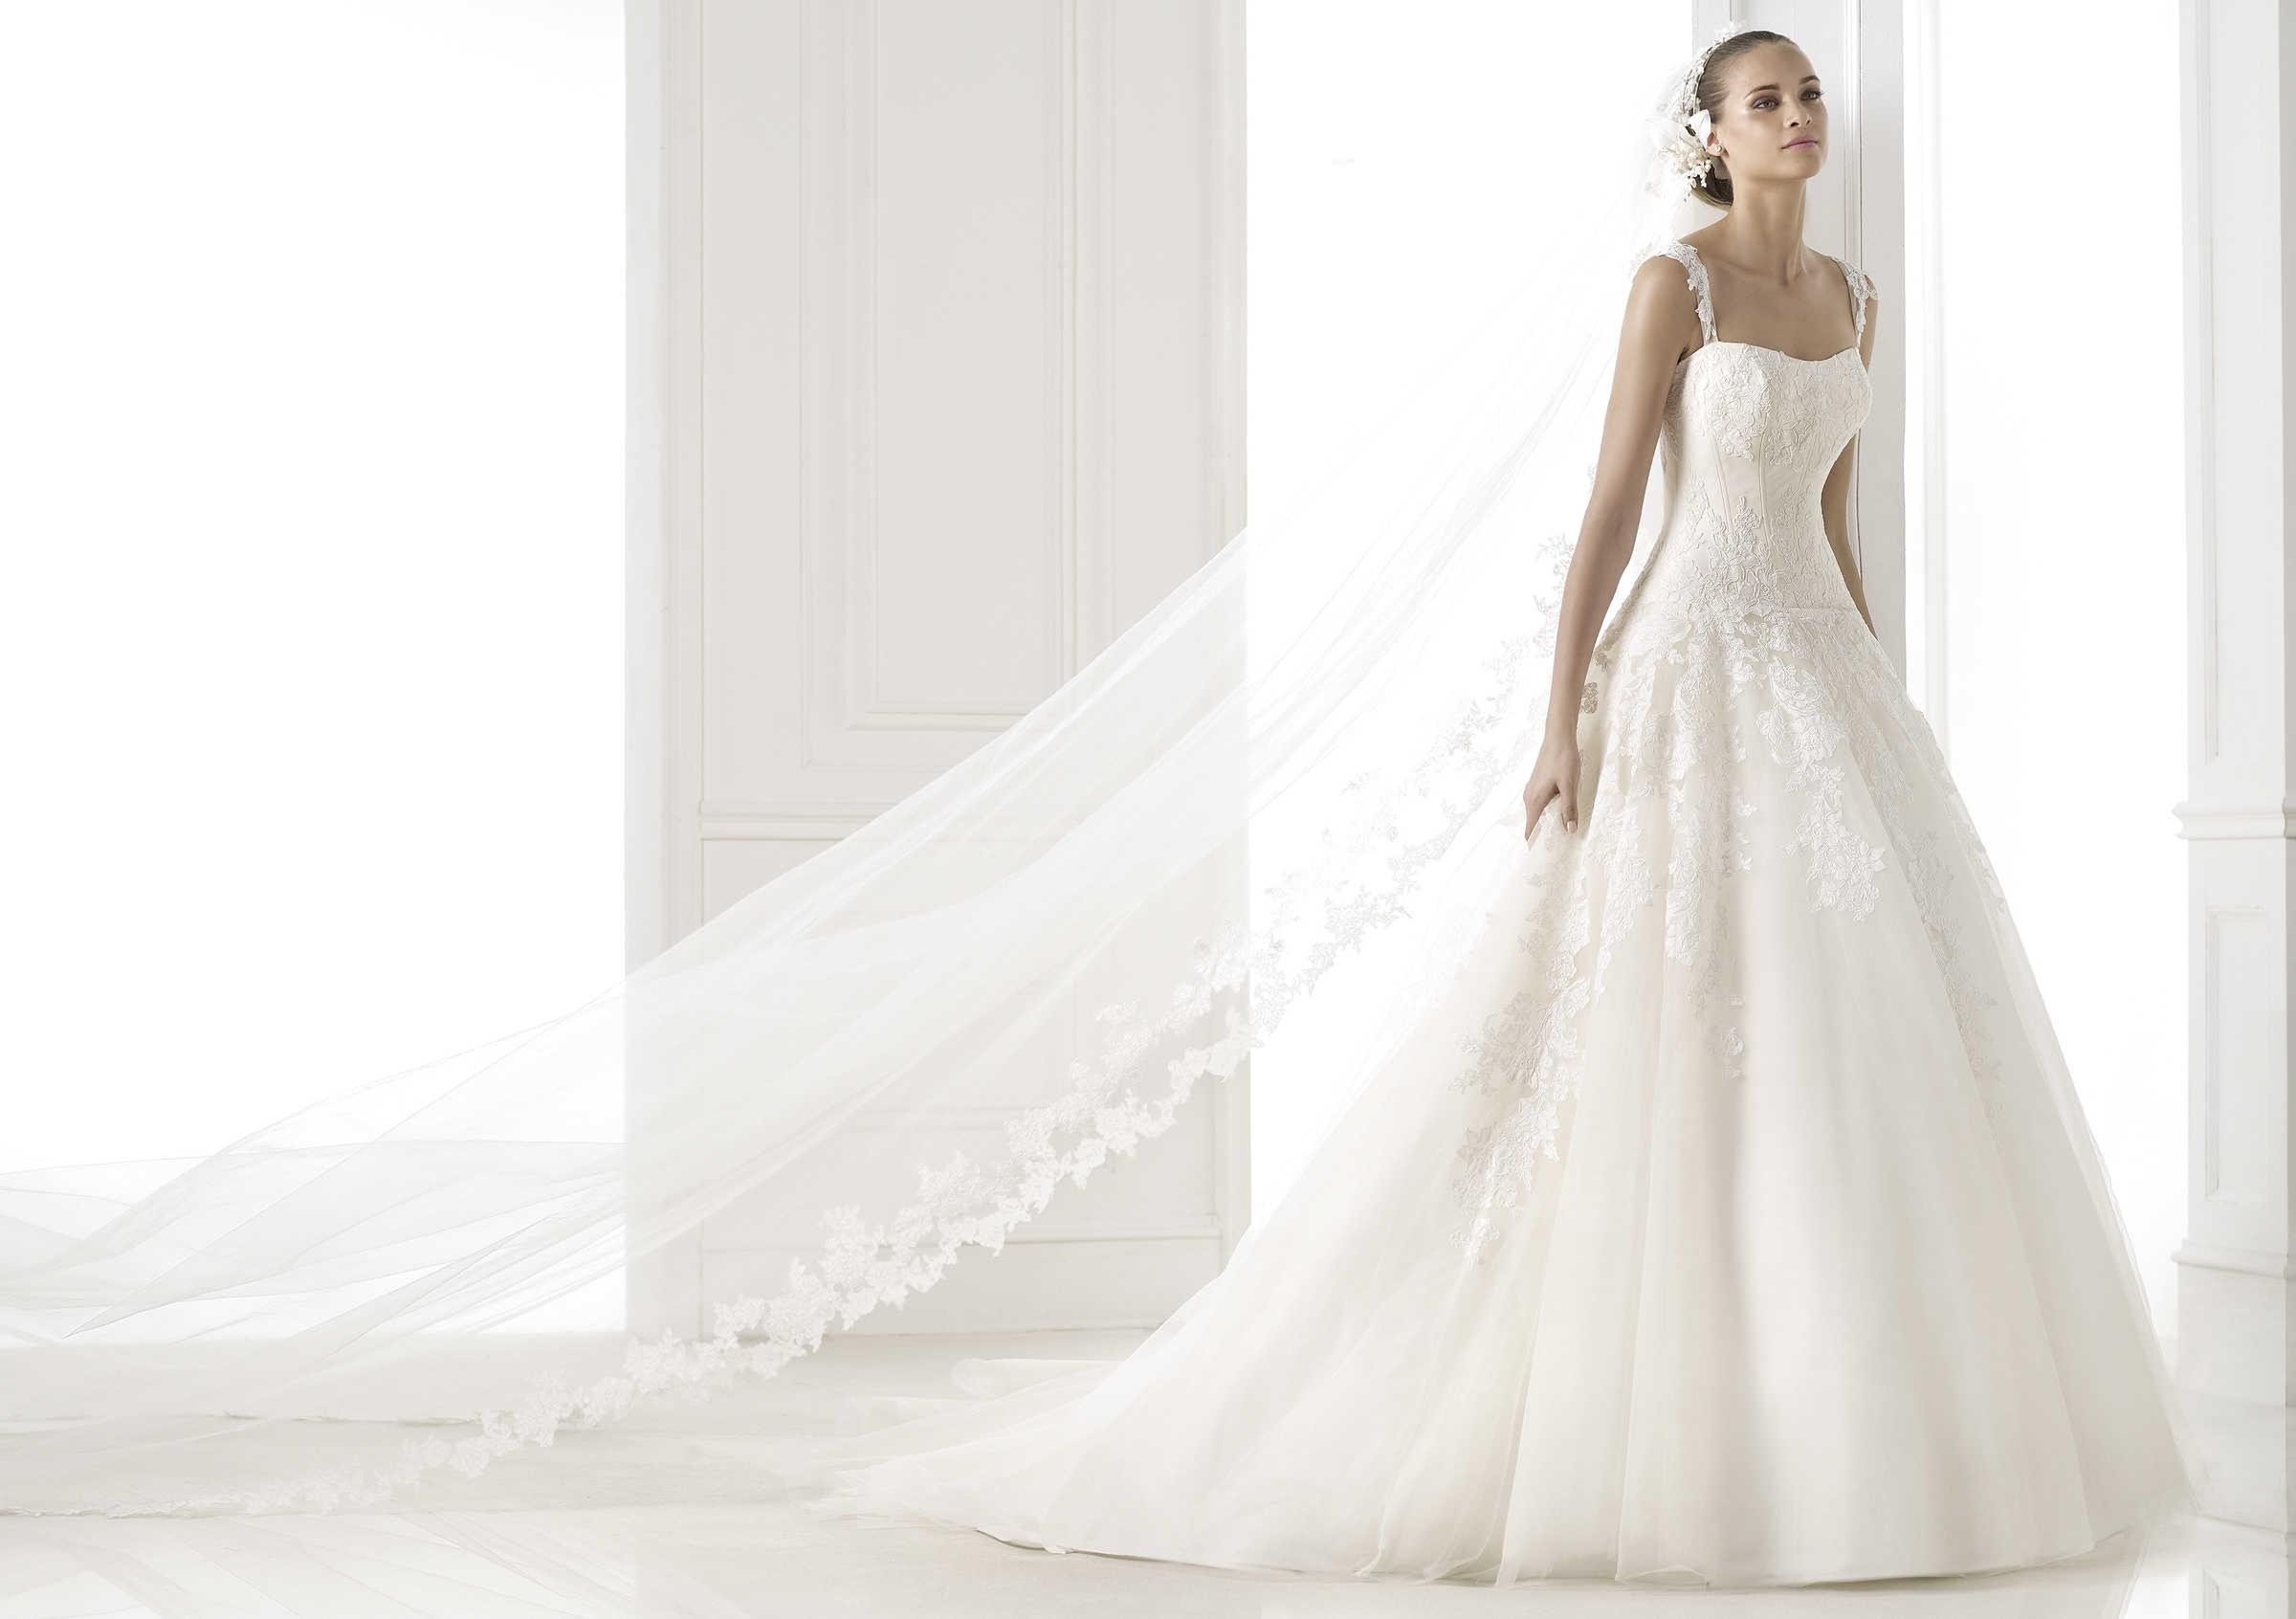 Used Wedding Dresses, Buy & Sell Your Wedding Dress